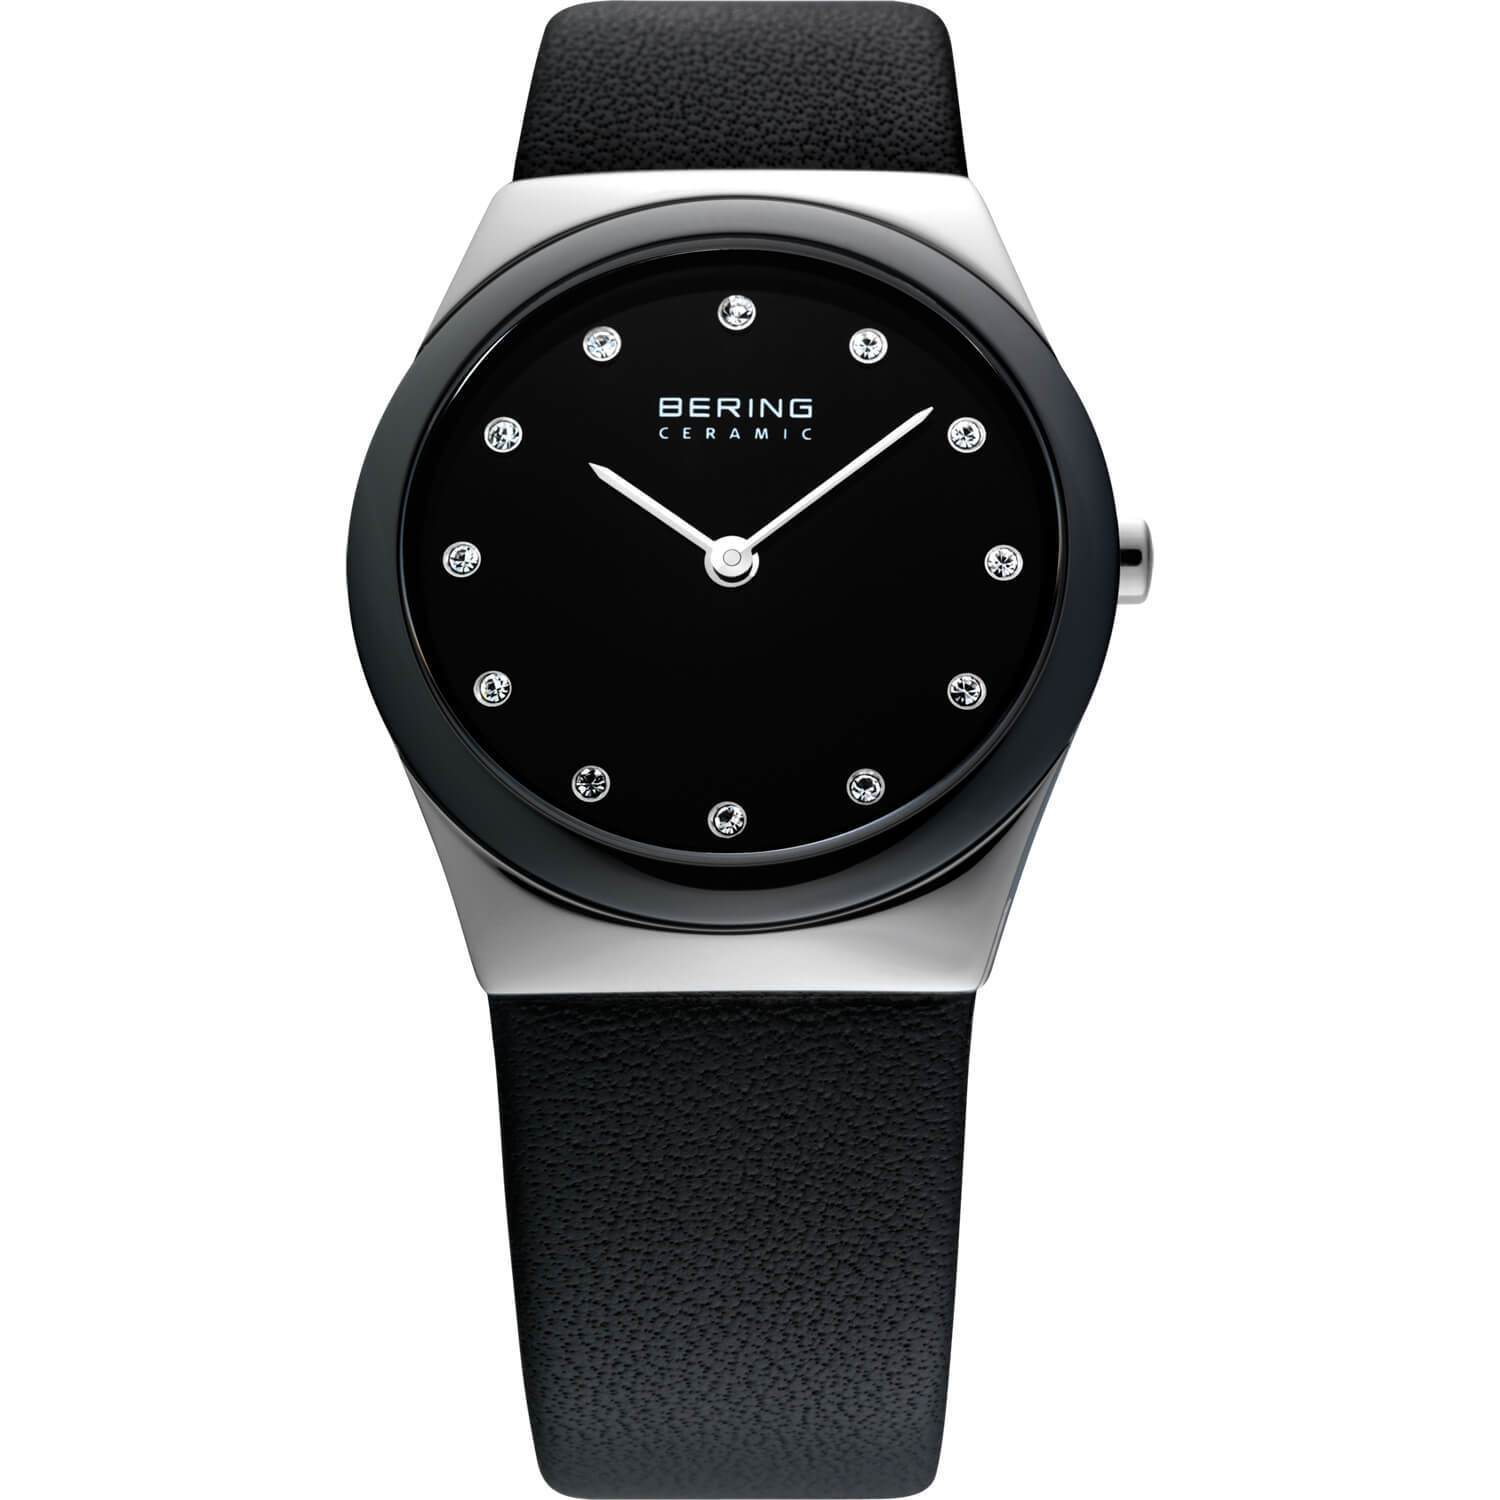 Bering Ceramic 32230-442 Black 30 mm Women's Watch - COCOMI